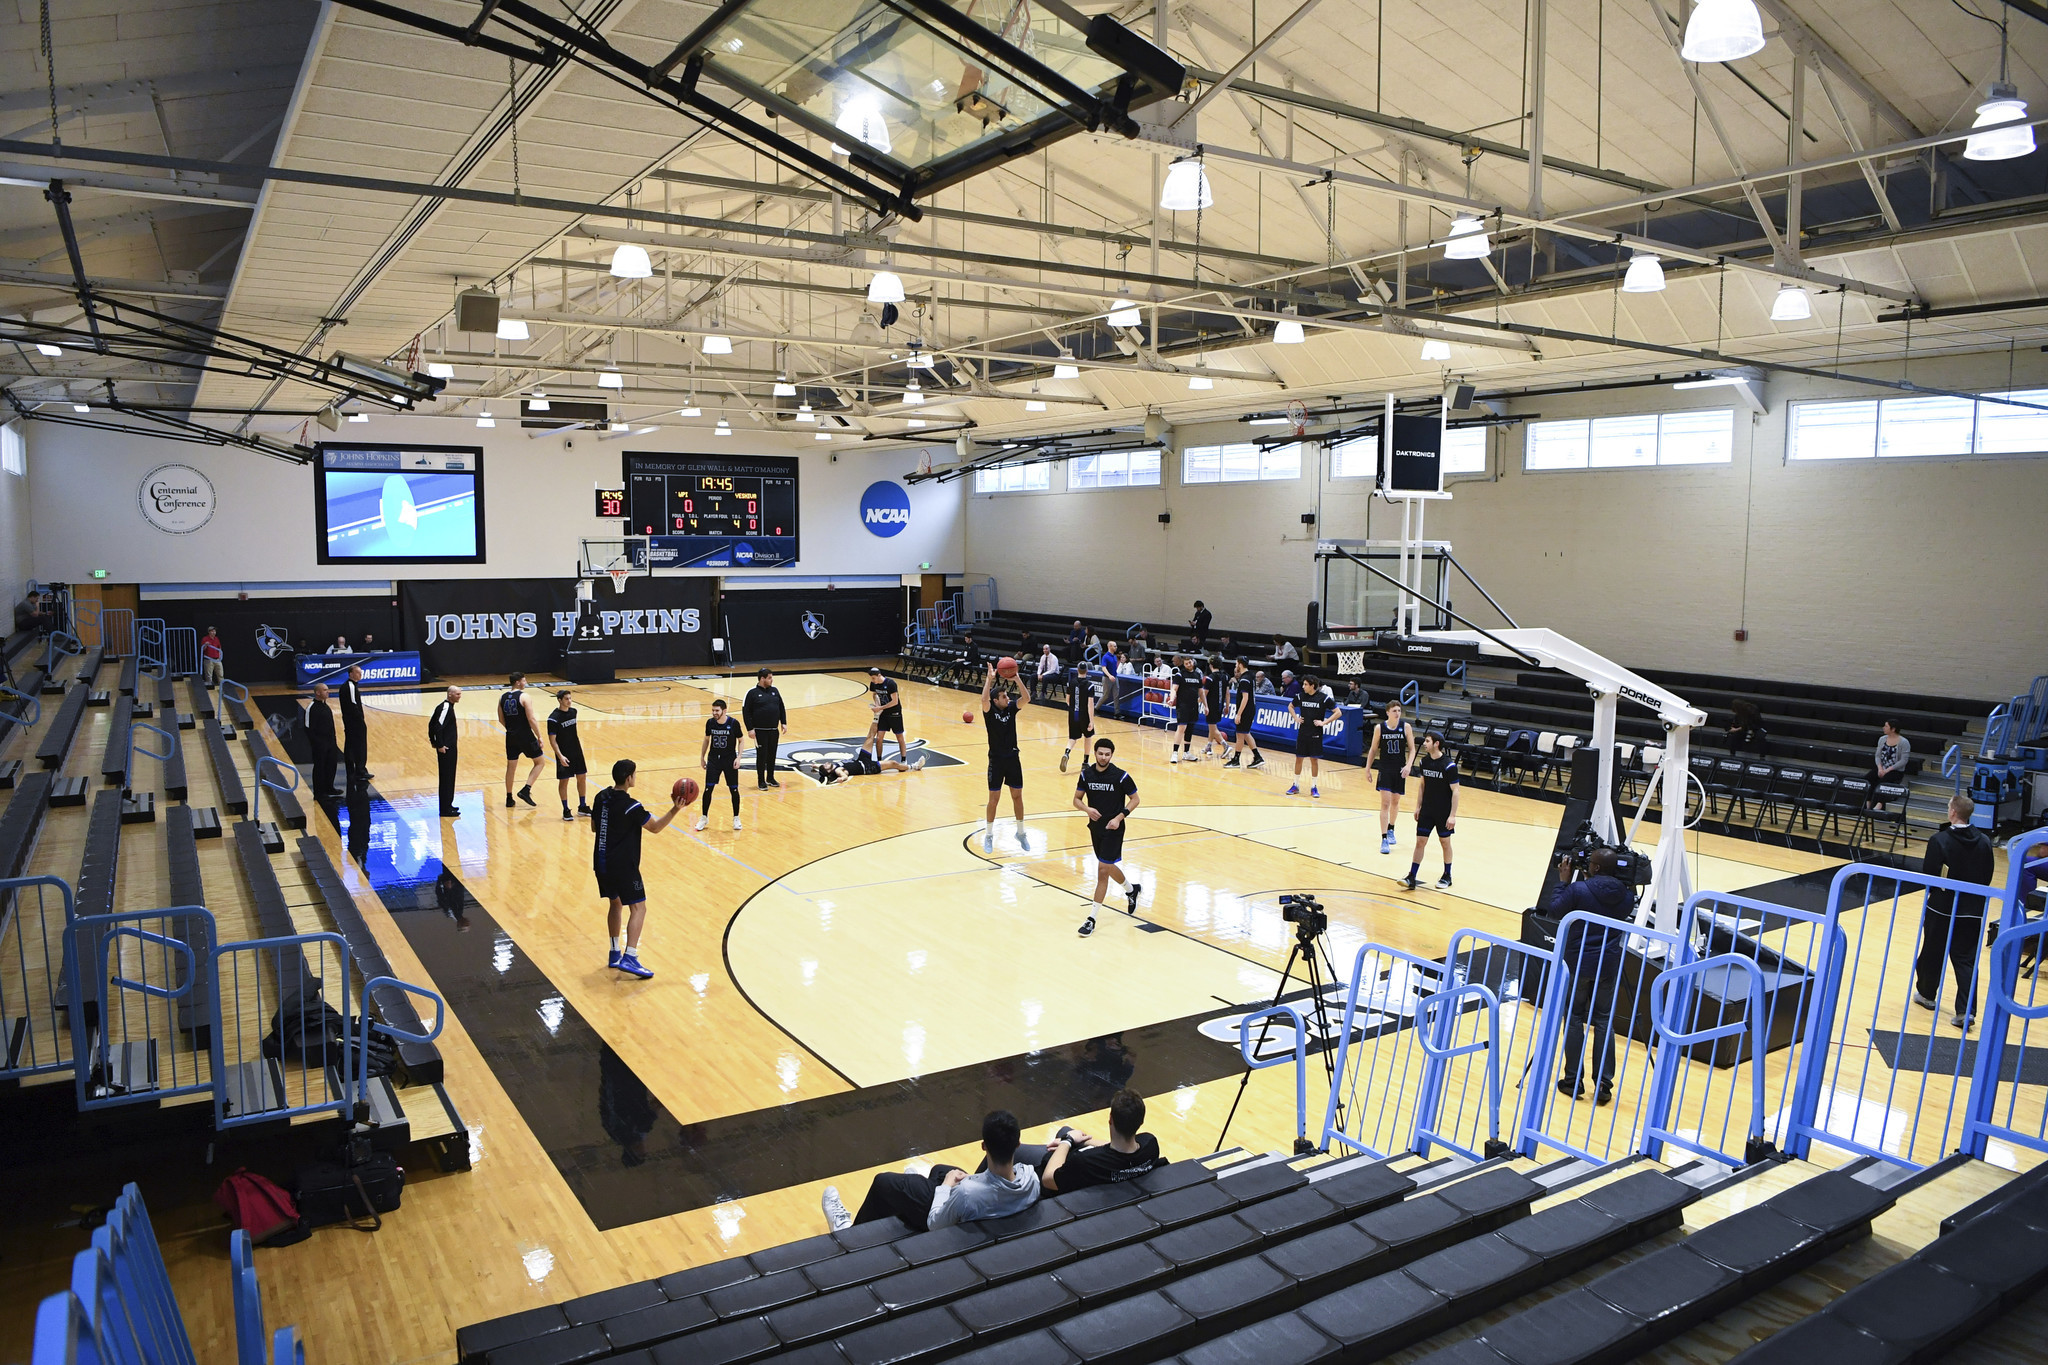 Fans banned from 3 Division III NCAA tournament games over coronavirus concerns